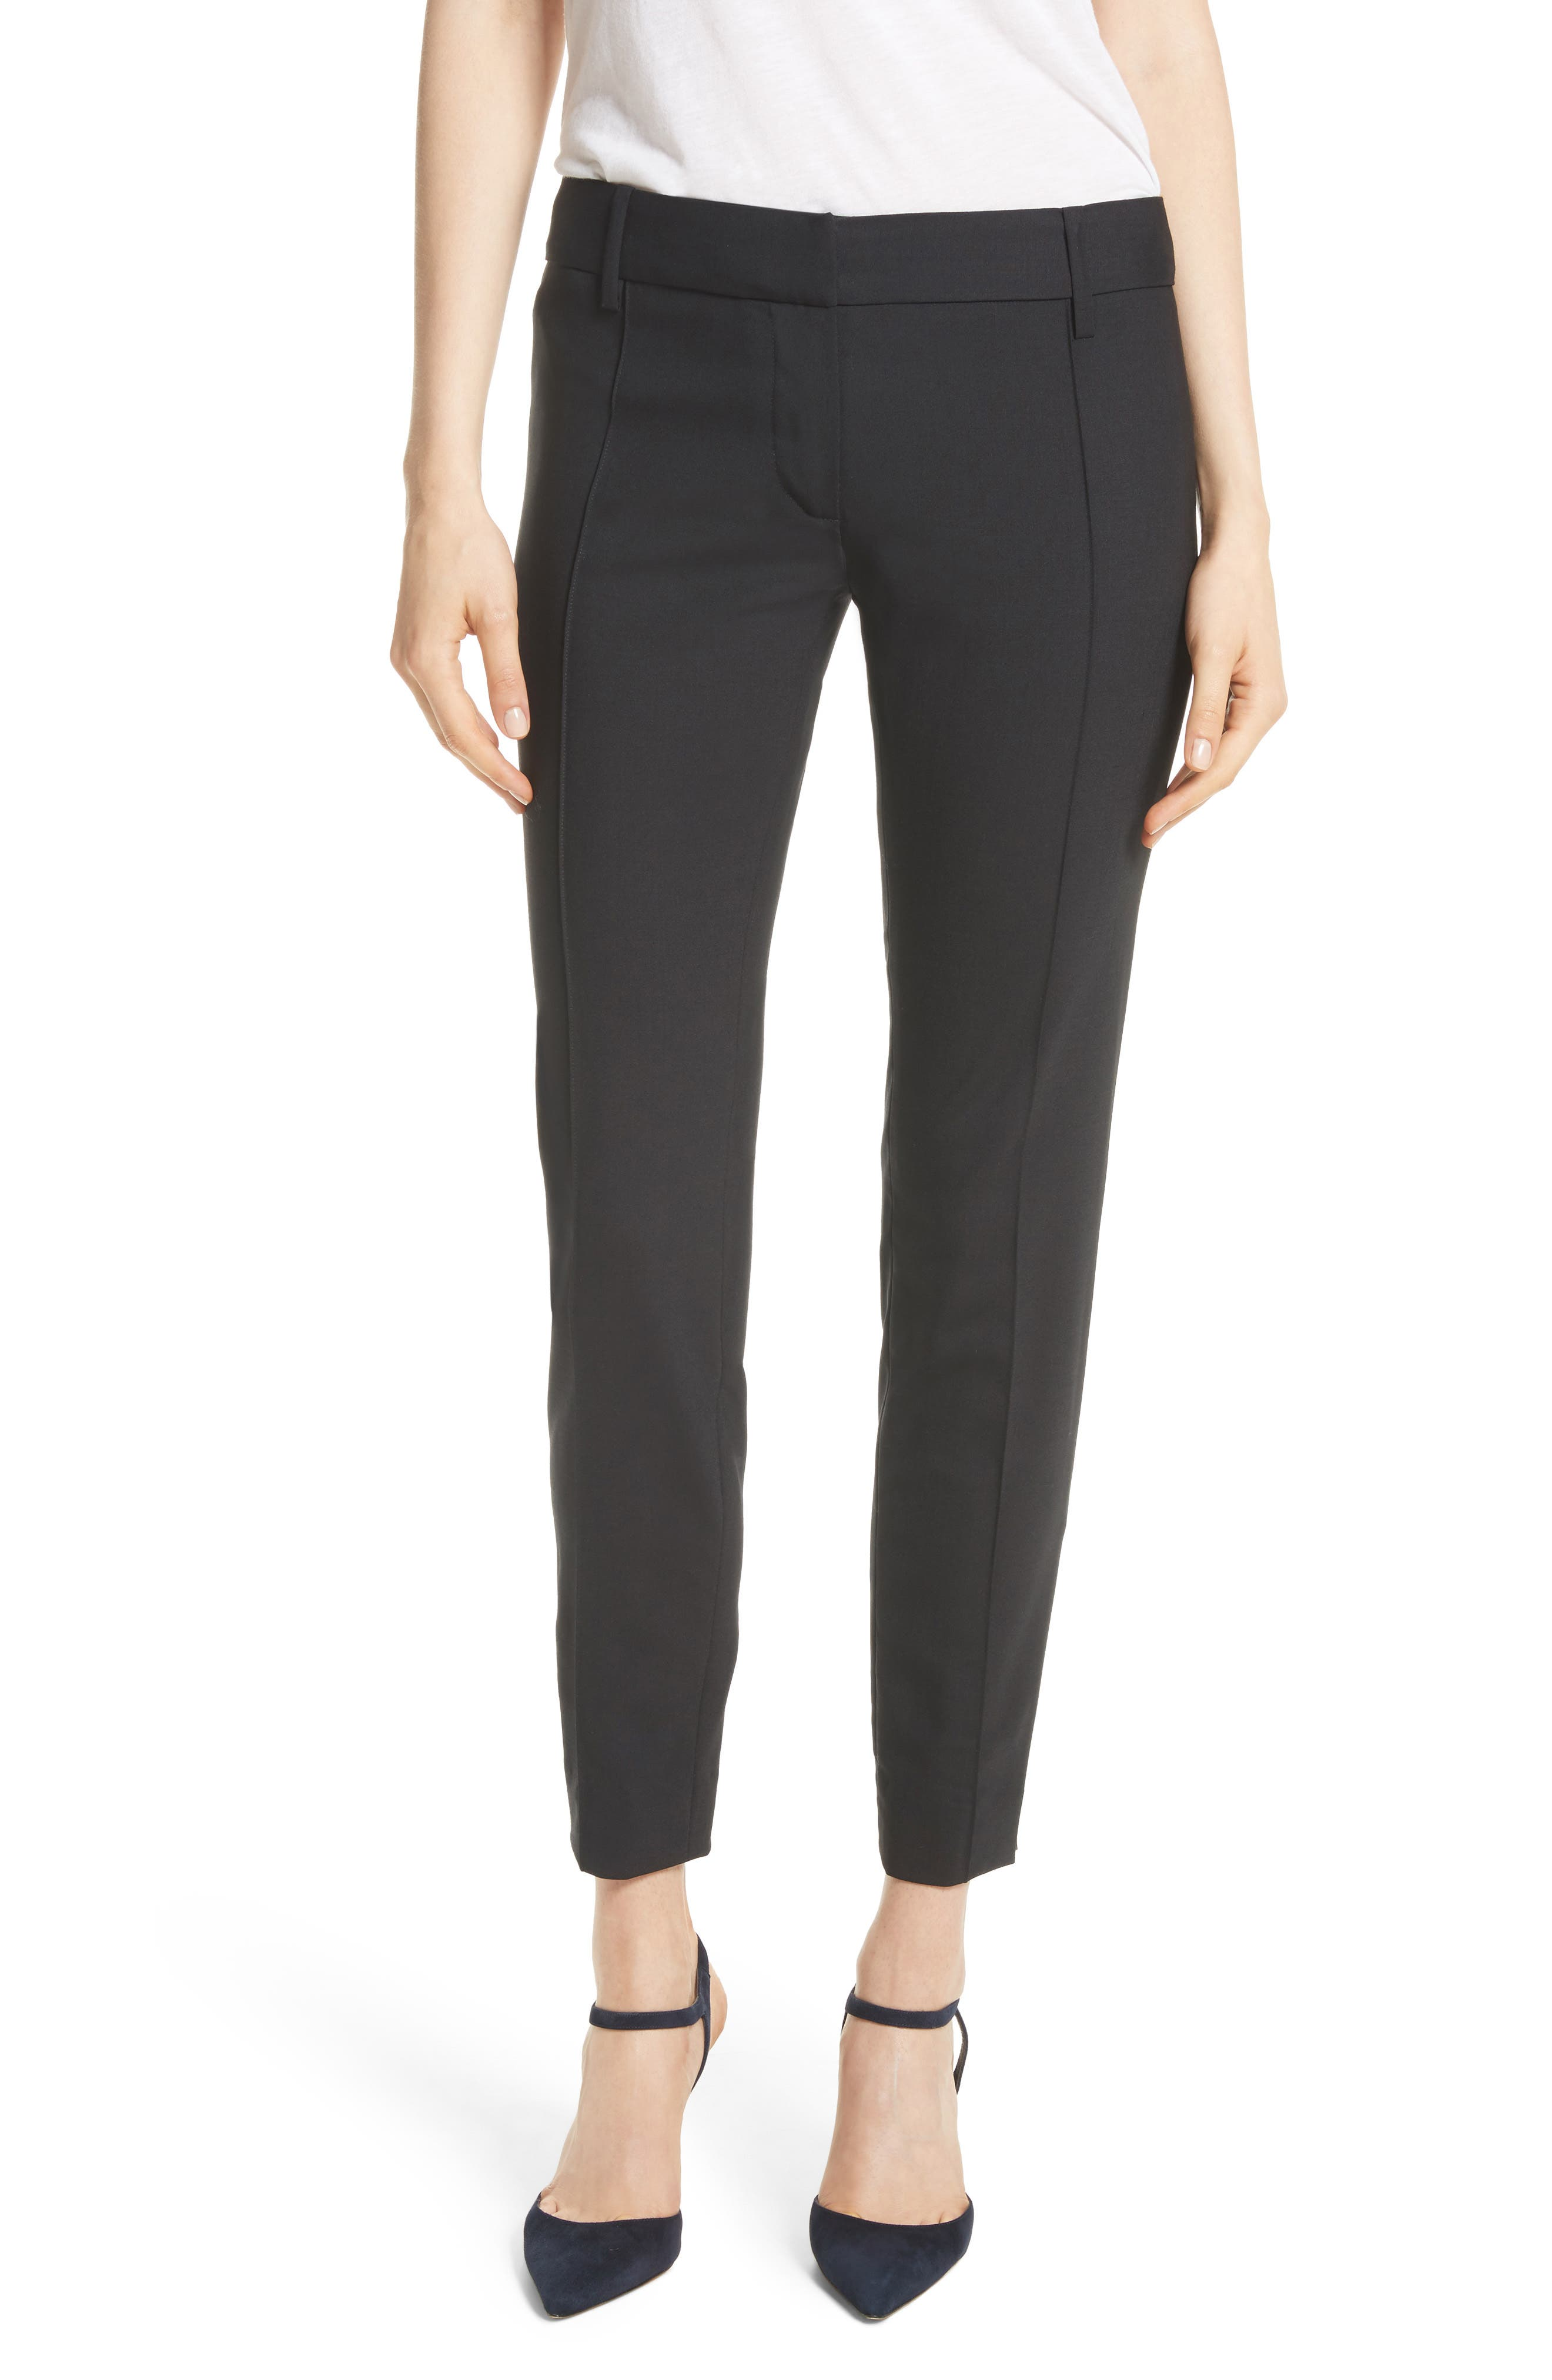 Nahla Ankle Pants,                         Main,                         color, Black